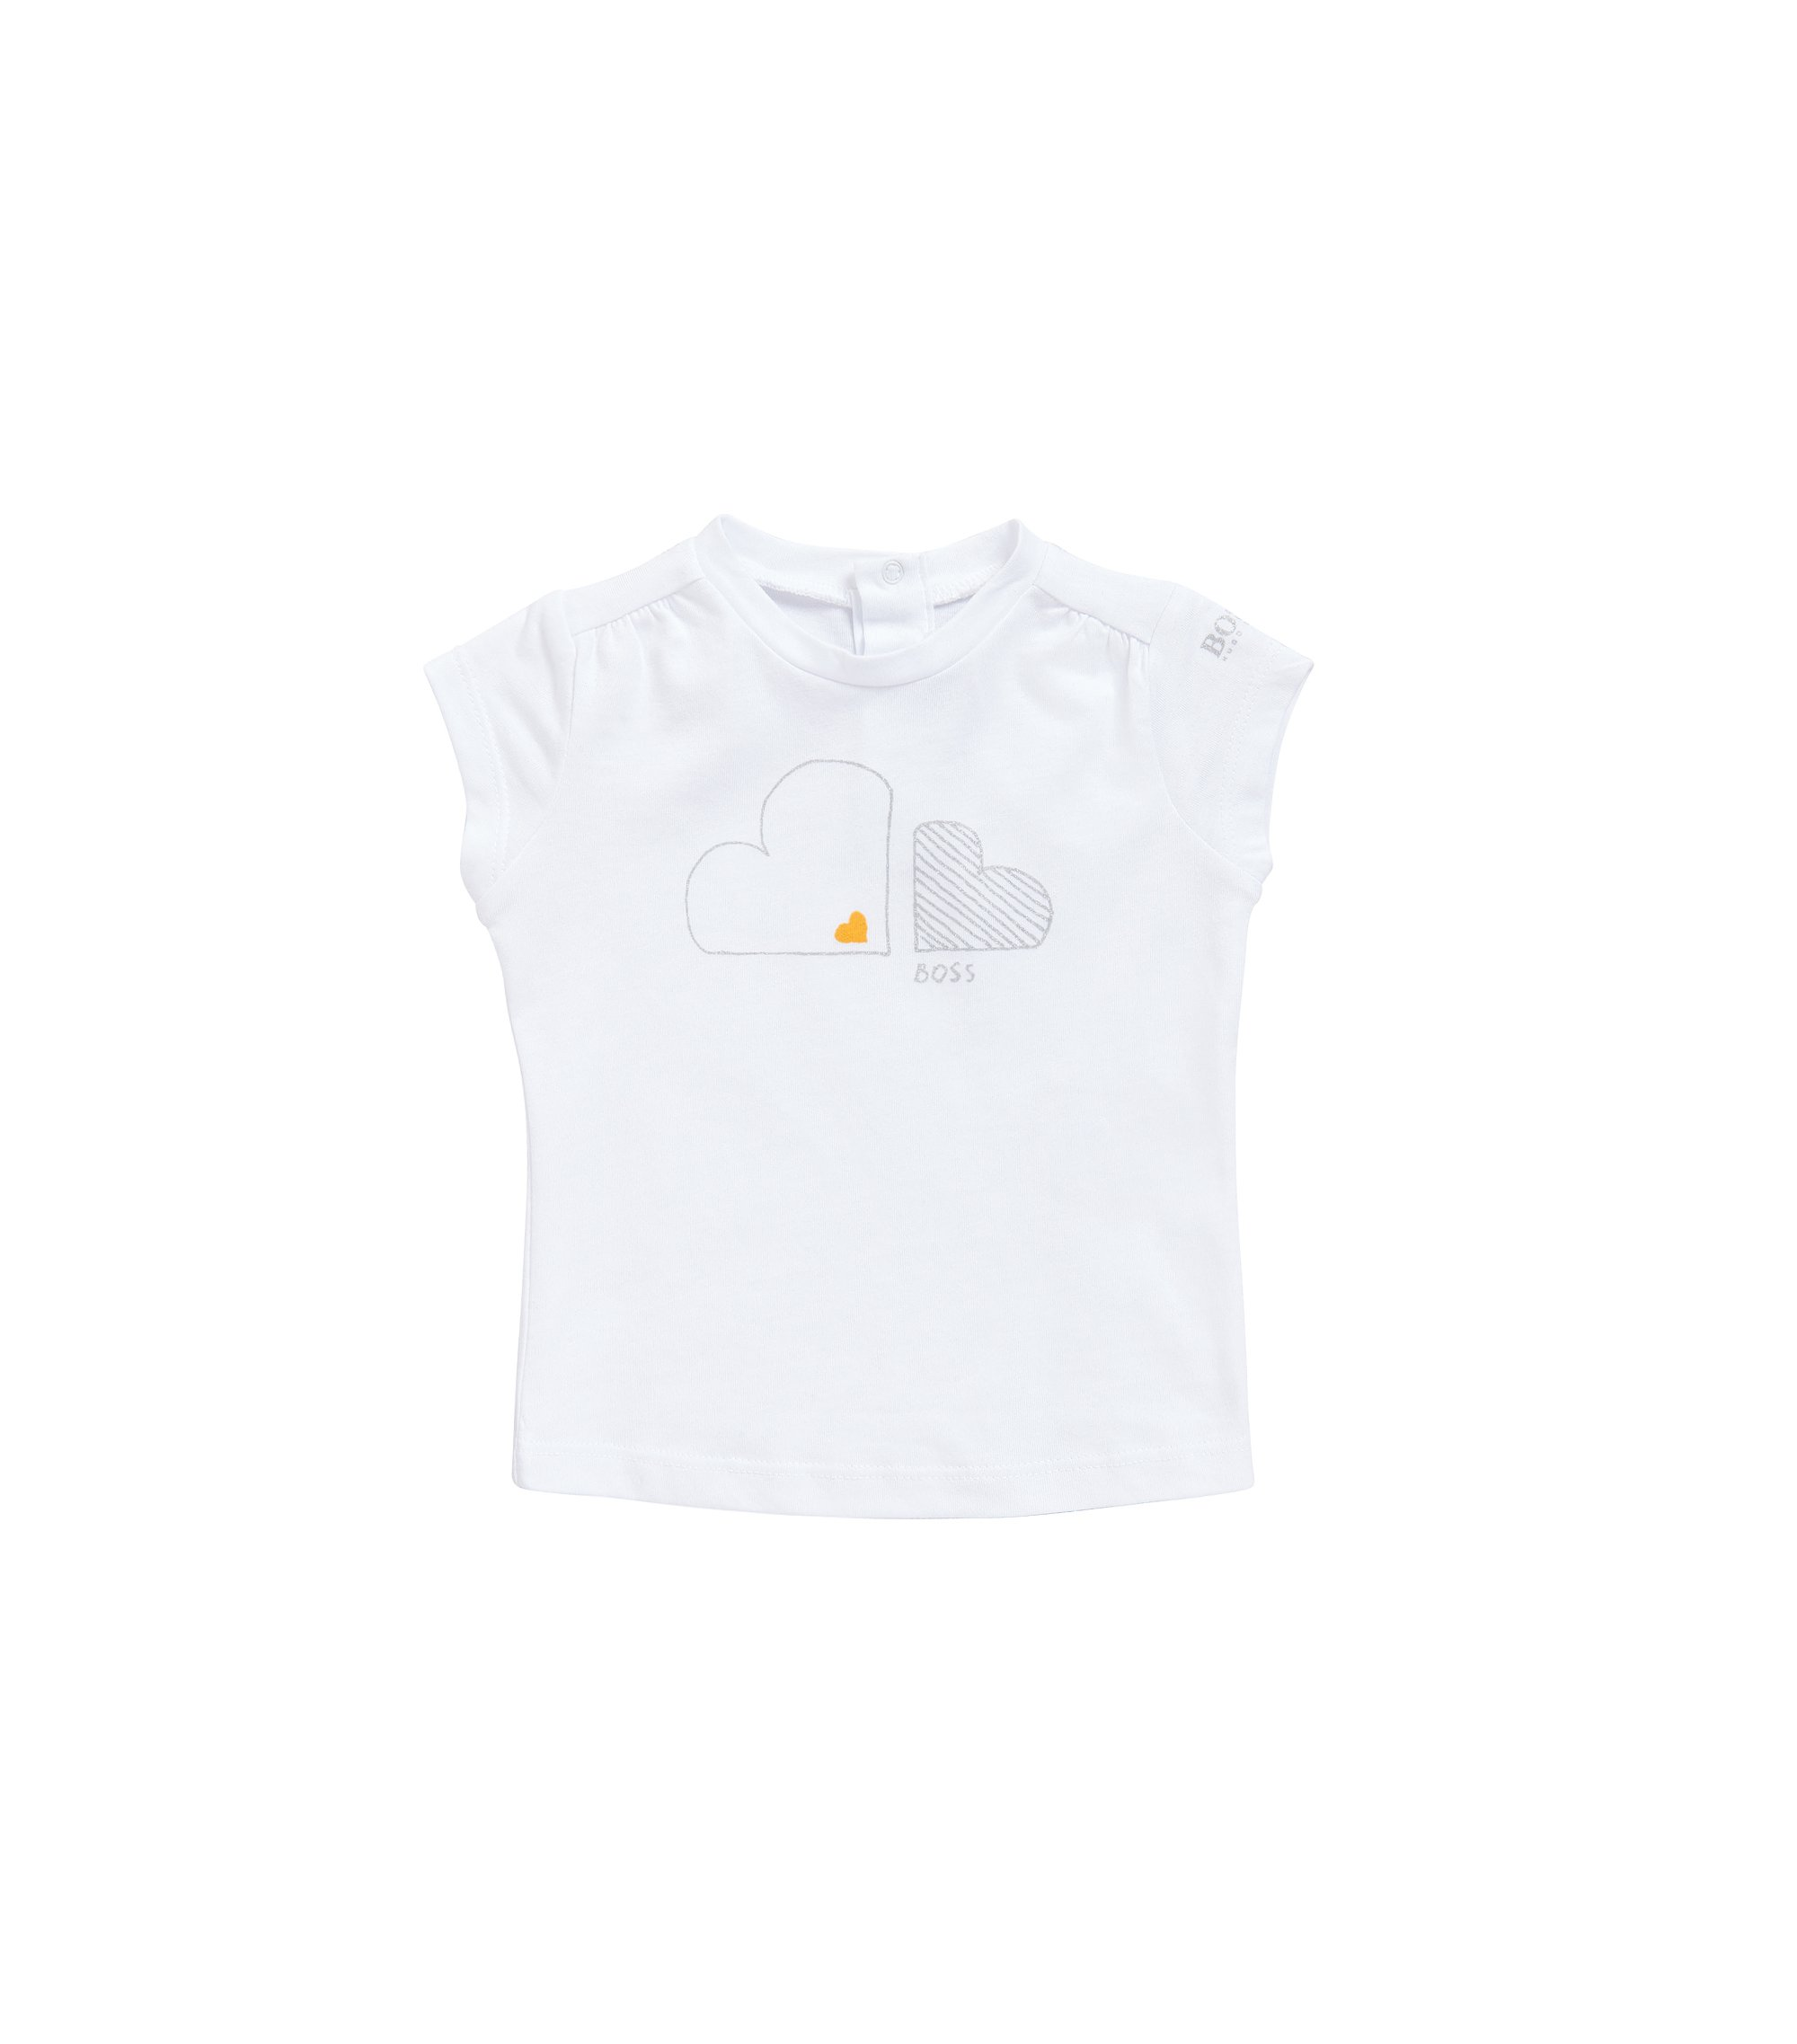 Newborn's T-shirt in a cotton-modal blend with a glitter print: 'J05474', Patterned